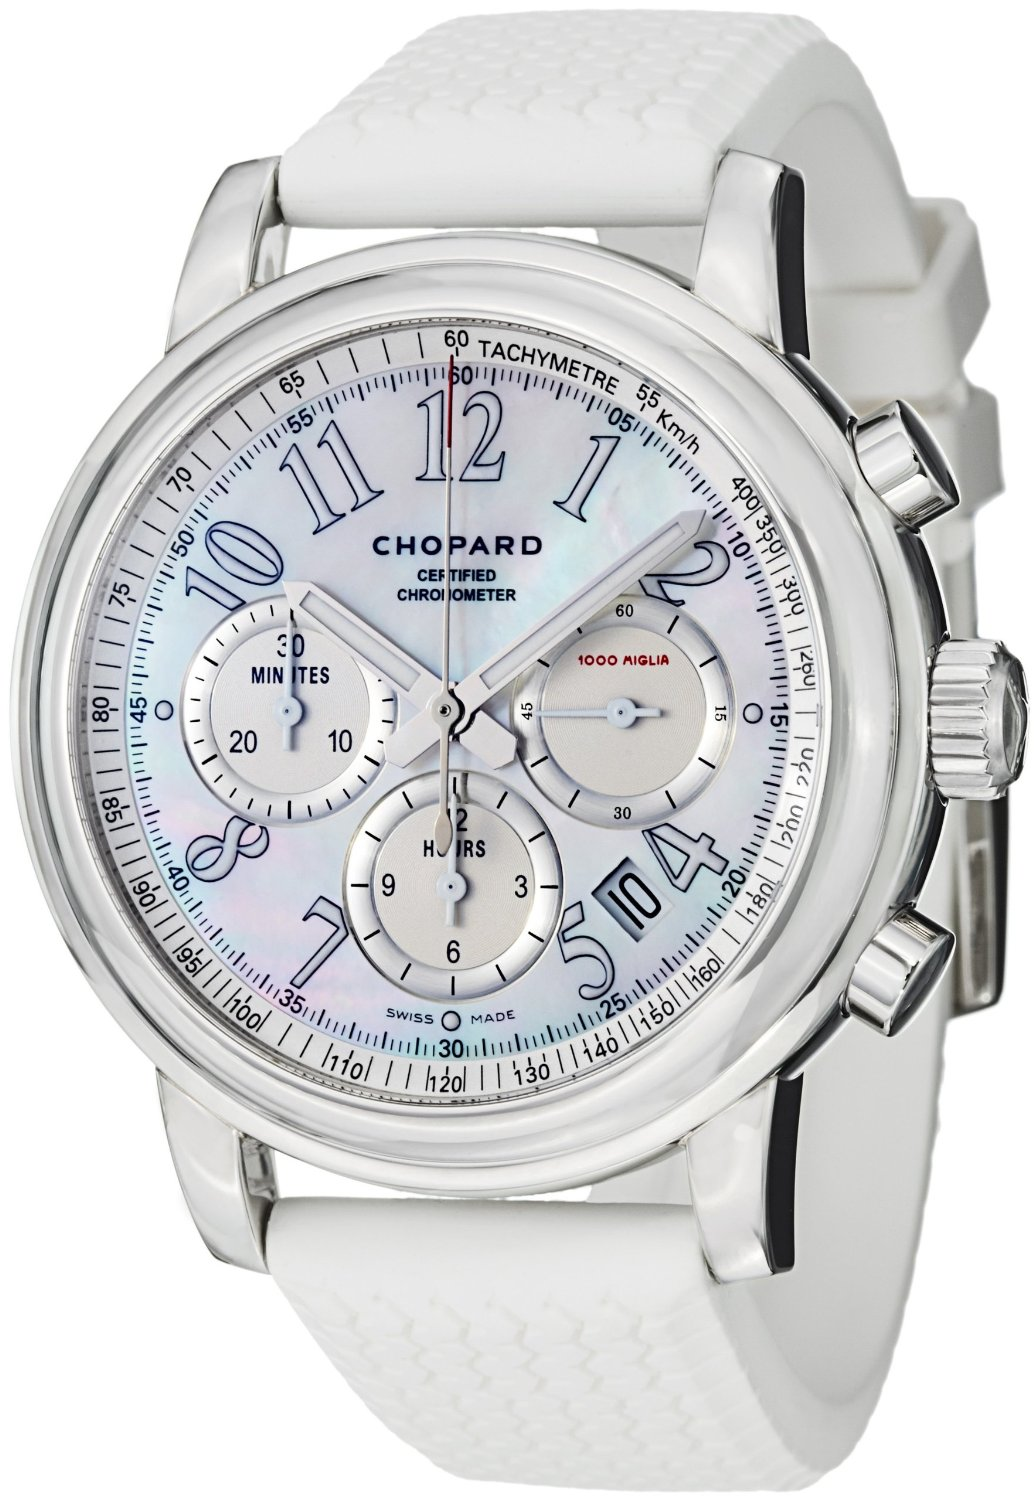 watch 69a04 34095 ショパール 時計 Chopard 1000 Miglia Mens Mother-of-Pearl Dial Automatic  Chronograph Watch - 輸入時計専門店 ショップ タイムズ 通販